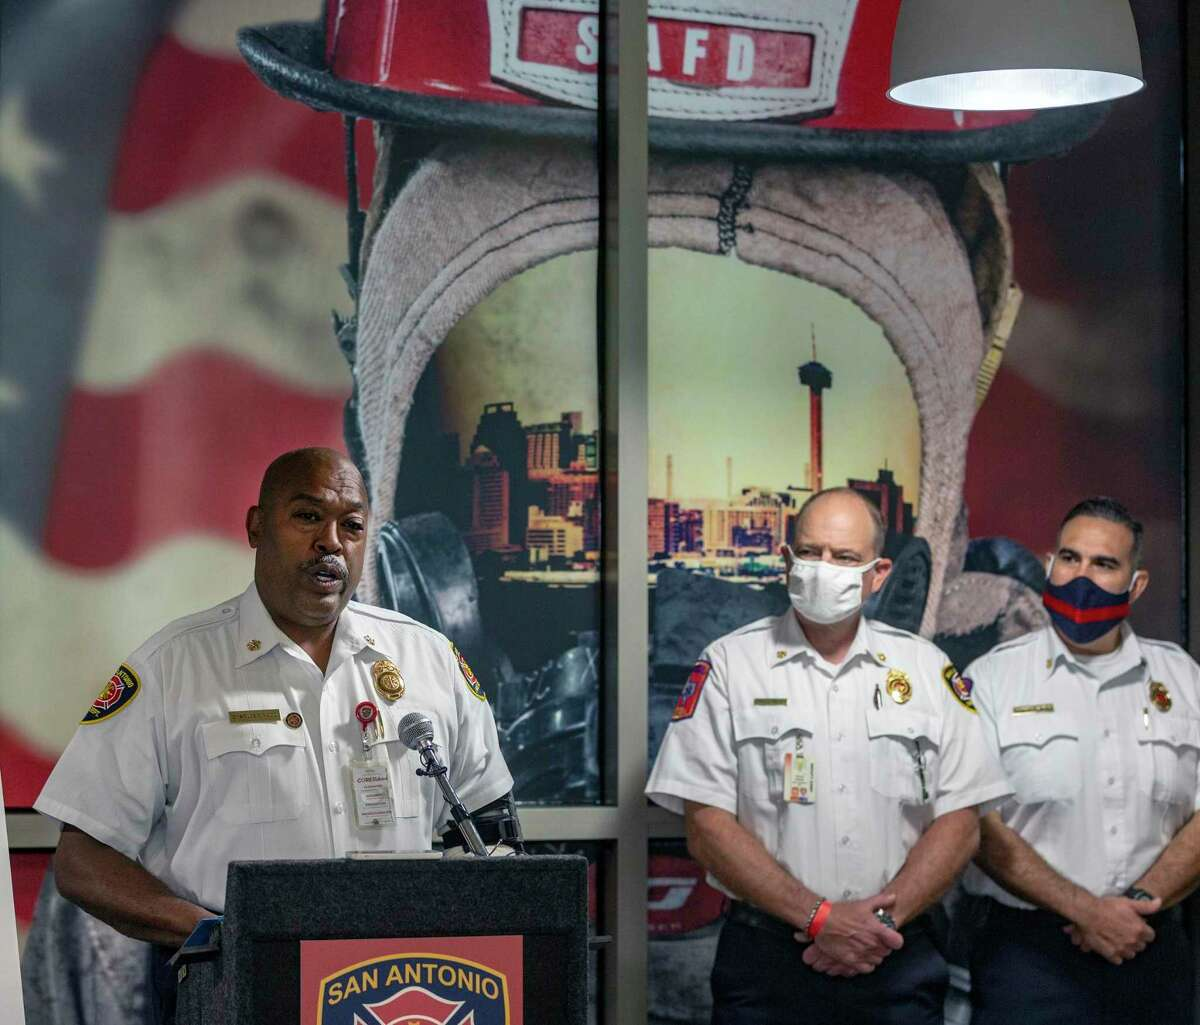 San Antonio Fire Department chief Charles Hood talks Tuesday, June 16, 2020 at the San Antonio Public Safety Headquarters about being named the Metro Fire Chiefs Association's Fire Chief of the Year. While accepting the award Hood spoke about the Black Lives Matter movement, challenges he faced as San Antonio's first black fire chief, his personal experiences with racism during his life, and how he talks to his sons about being black in America.